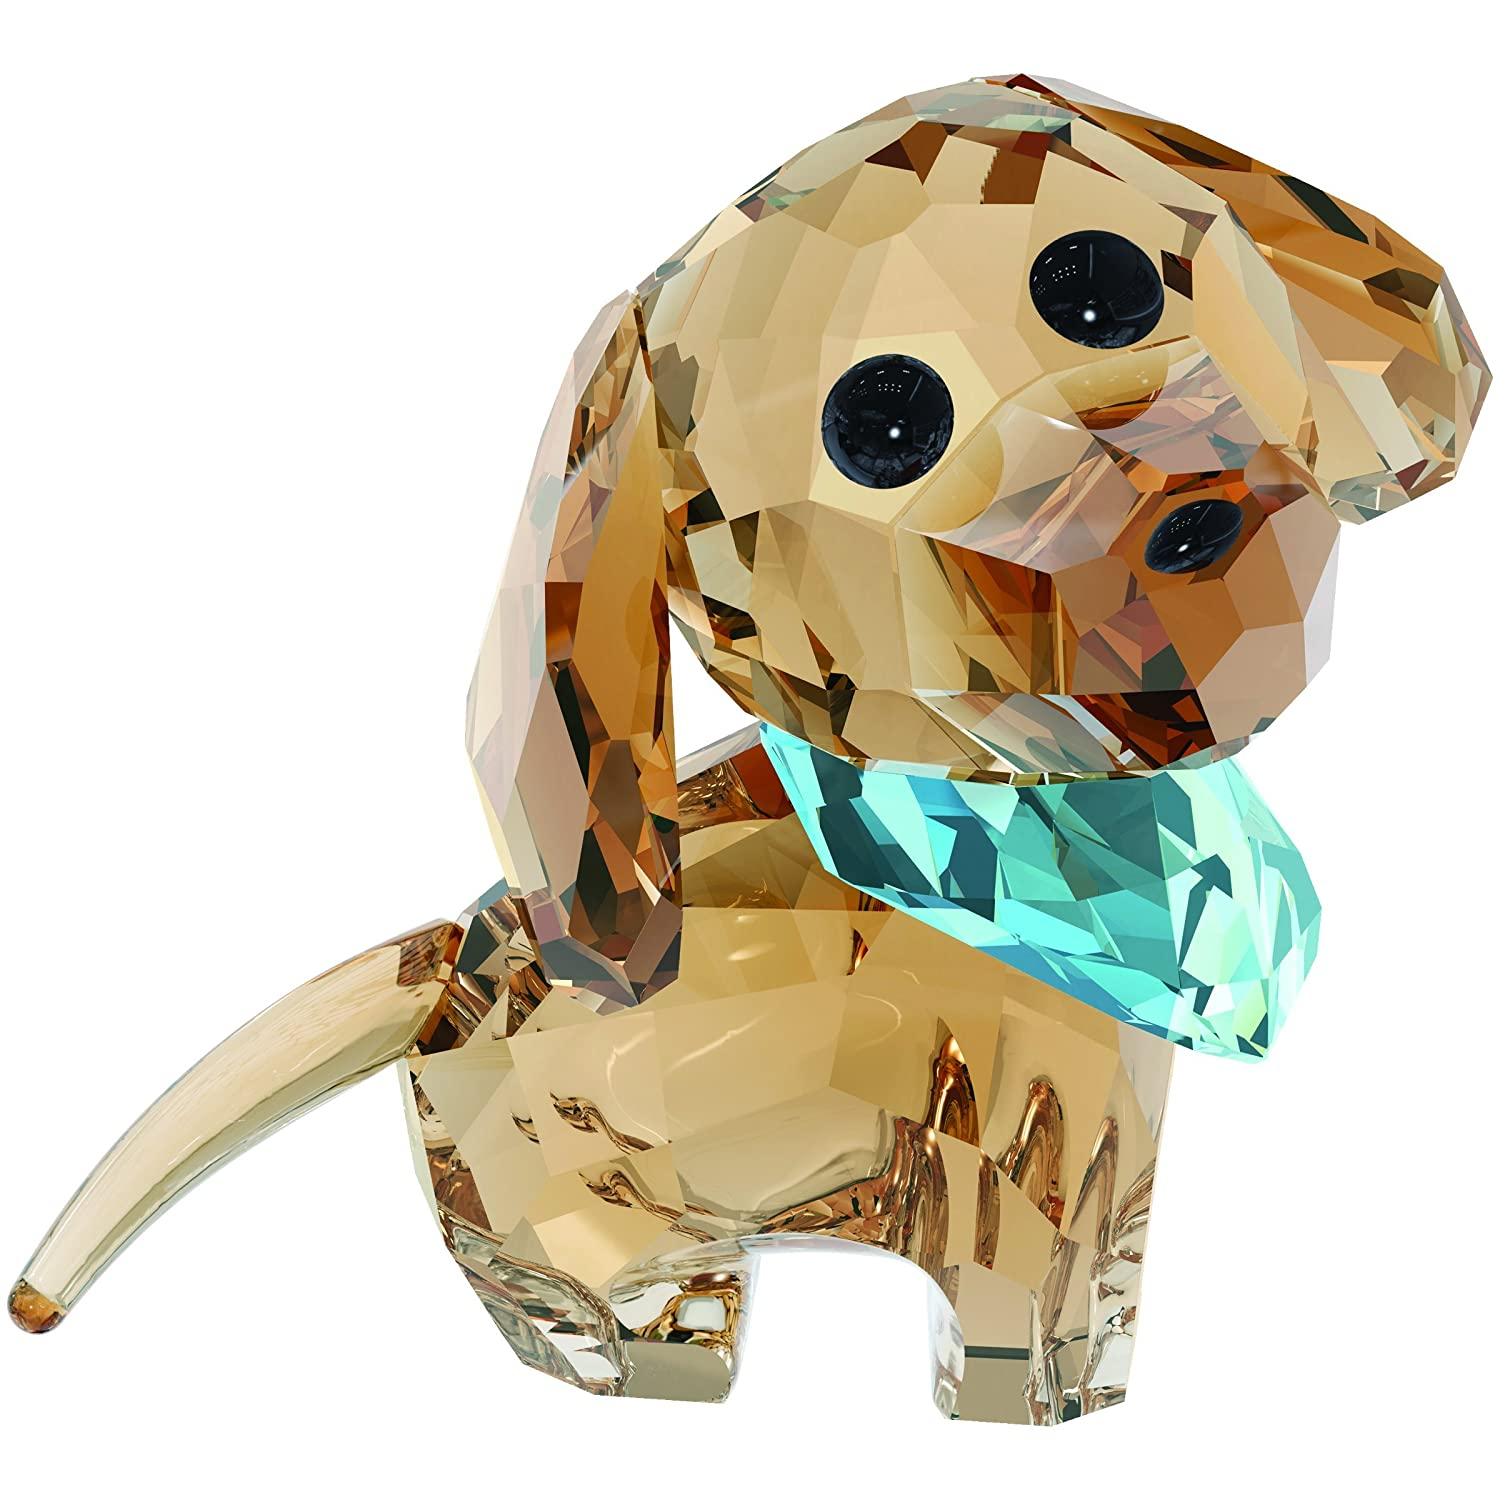 Swarovski Puppy Figurine, Milo The Dachshund